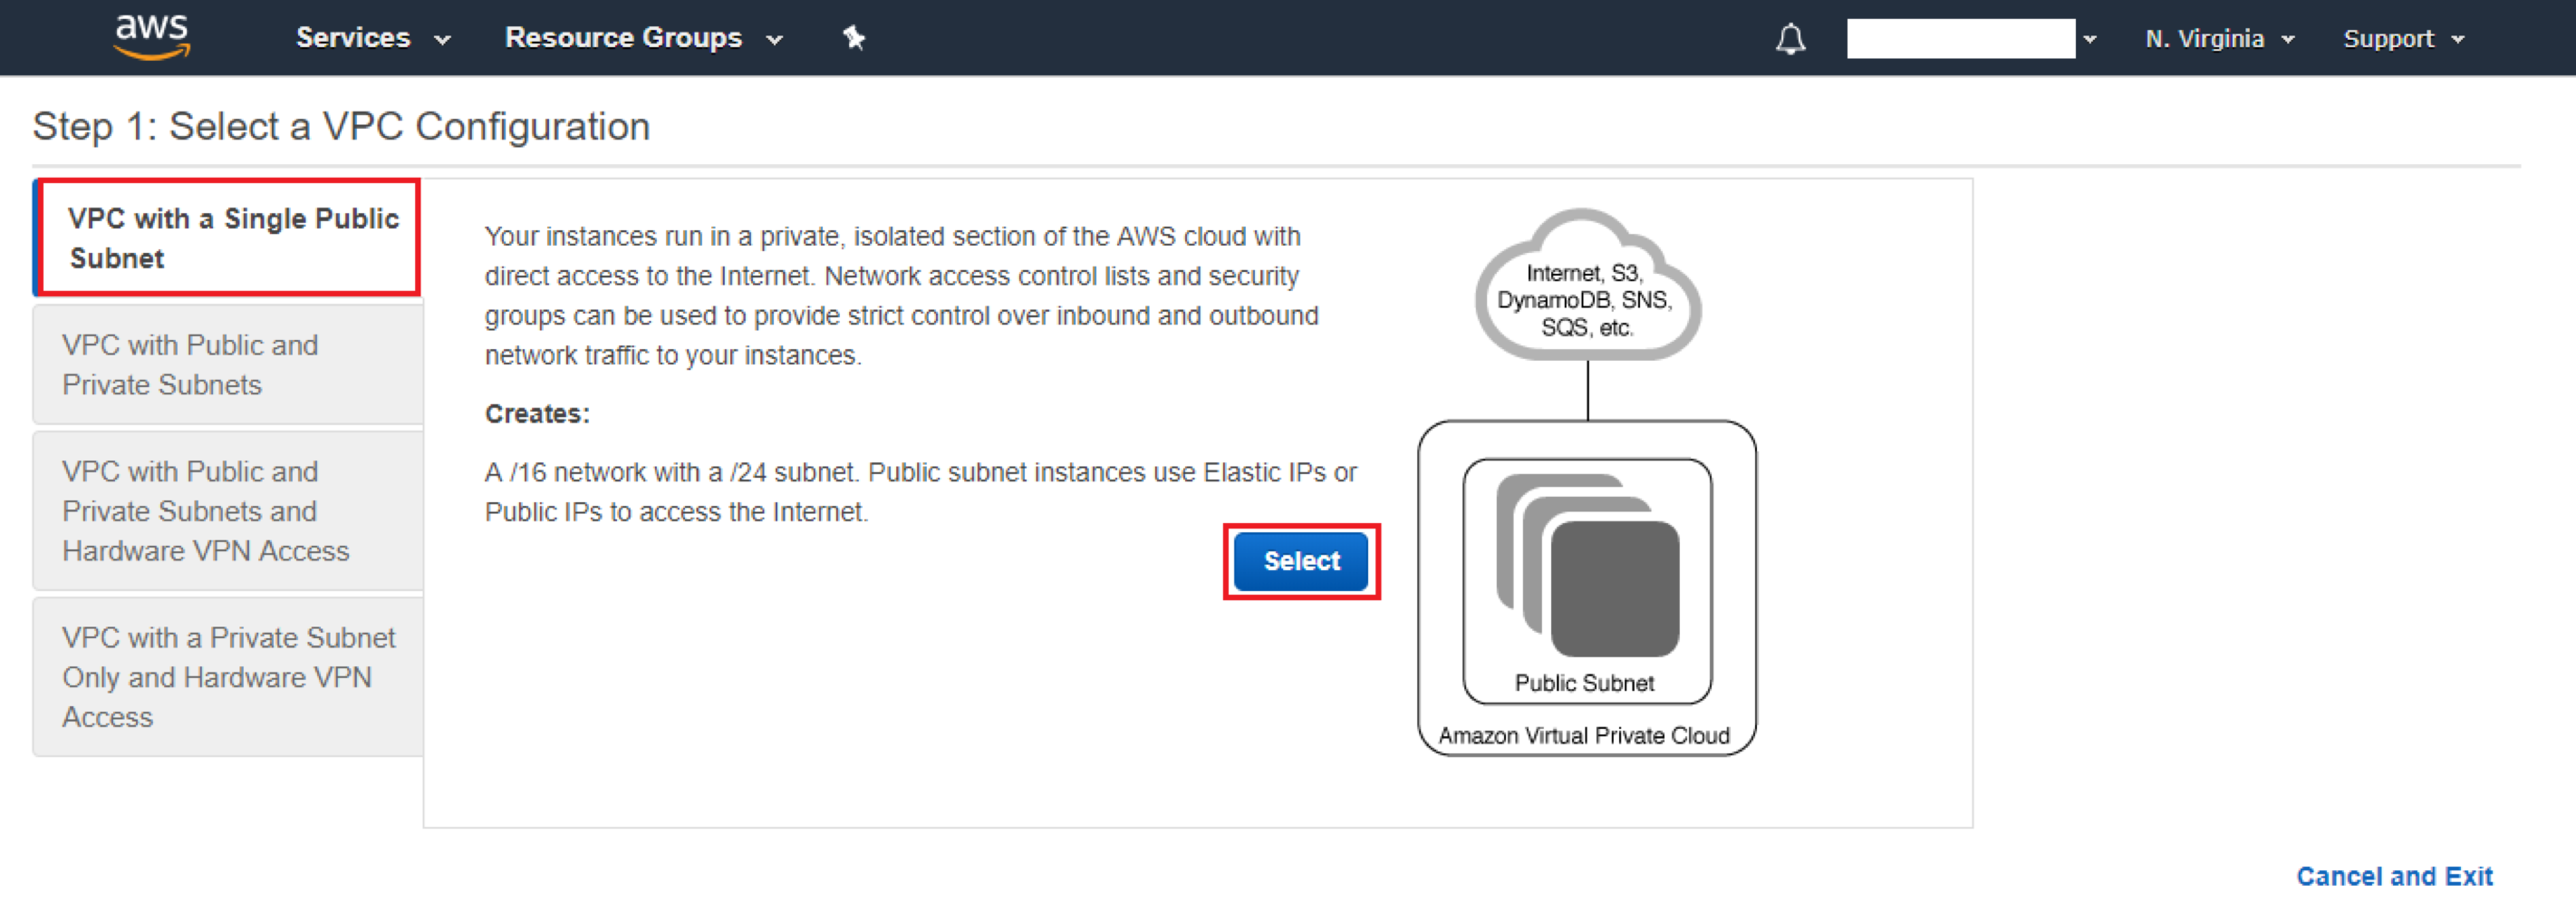 Creating VPC on AWS - Image 3